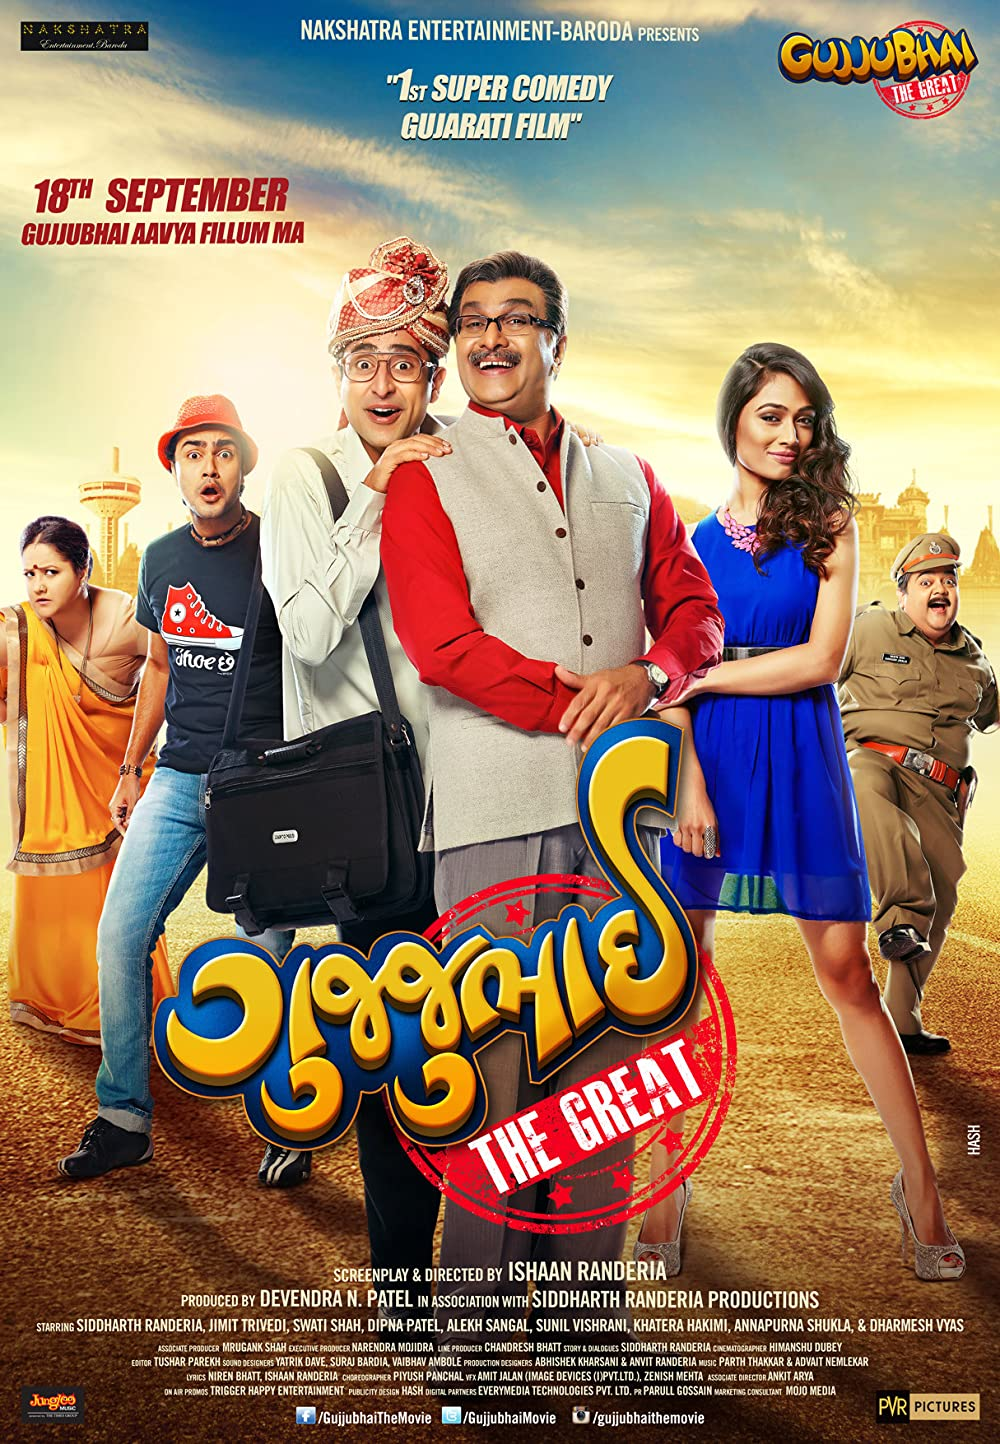 Gujjubhai the Great 2015 Gujarati Full Movie 440MB HDRip ESub Download